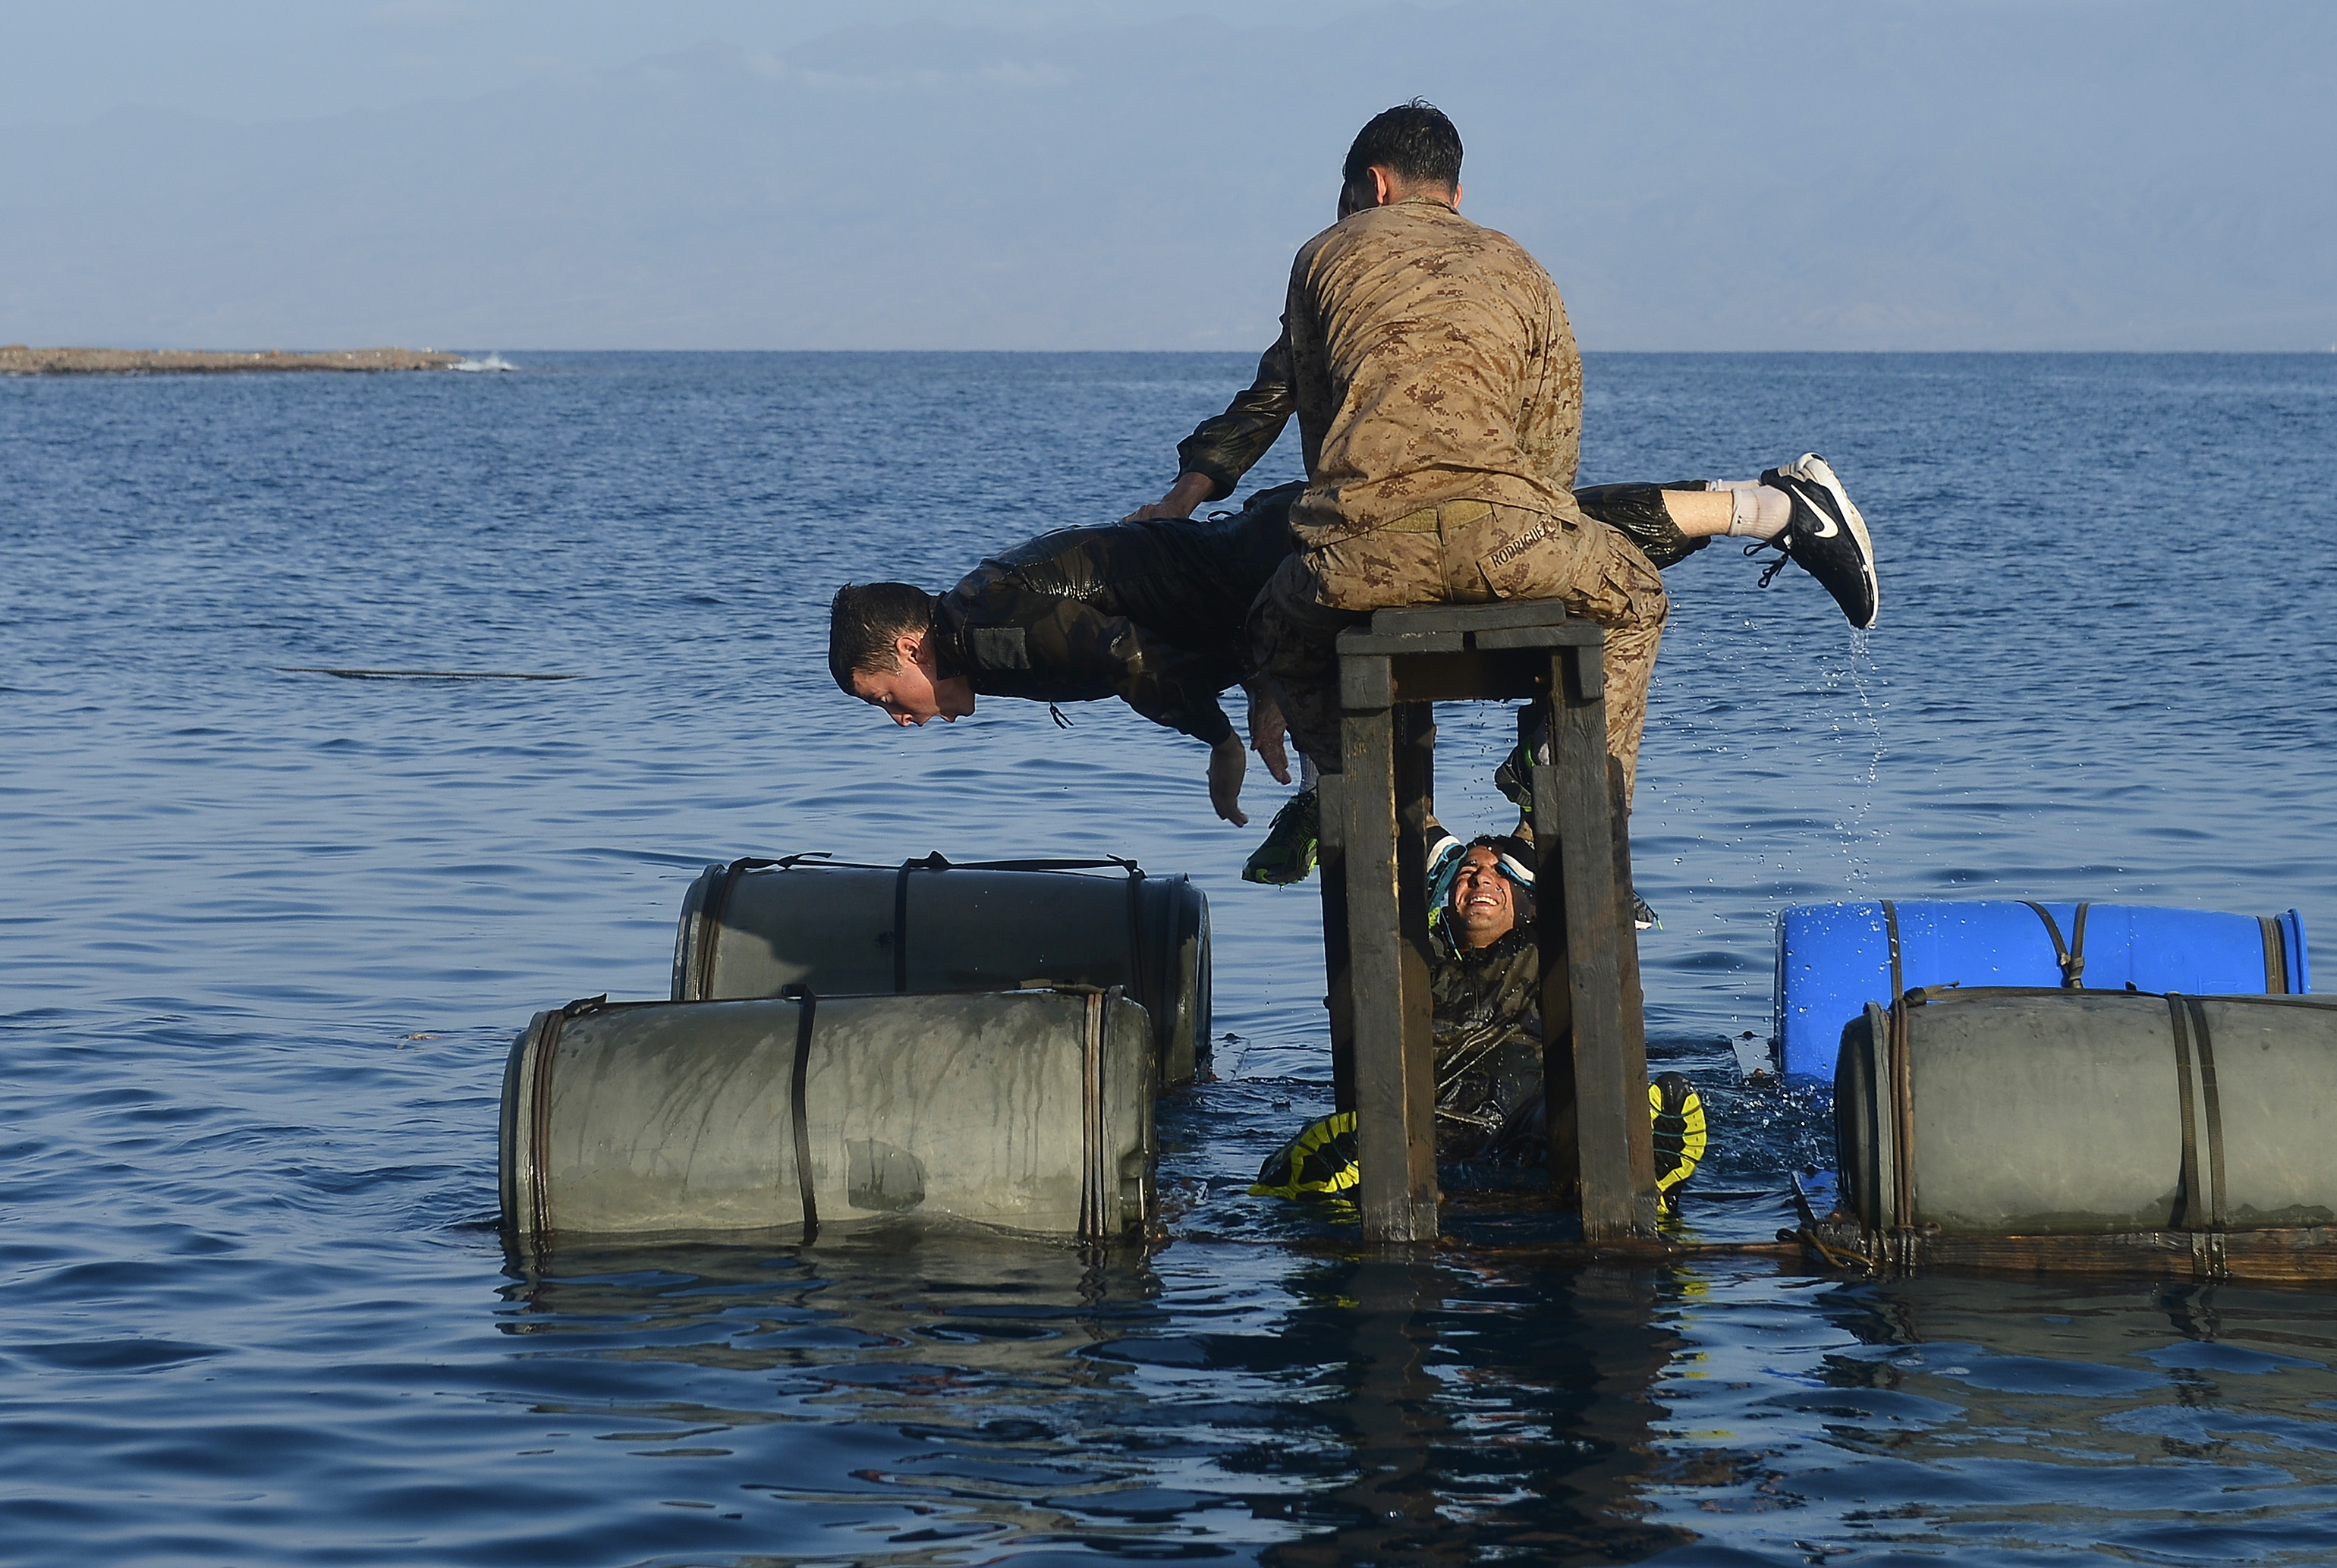 U.S. and French service members assist each other over water obstacles during the French Desert Survival Course, near Arta Beach, Djibouti, Sept. 30, 2015. French and U.S. military members worked together to learn combat lifesaving skills, field tactics, land navigation, weapons training, trap setting, and survival cooking and water source locating during the 14-day course. (U.S. Air Force photo by Senior Airman Nesha Humes)